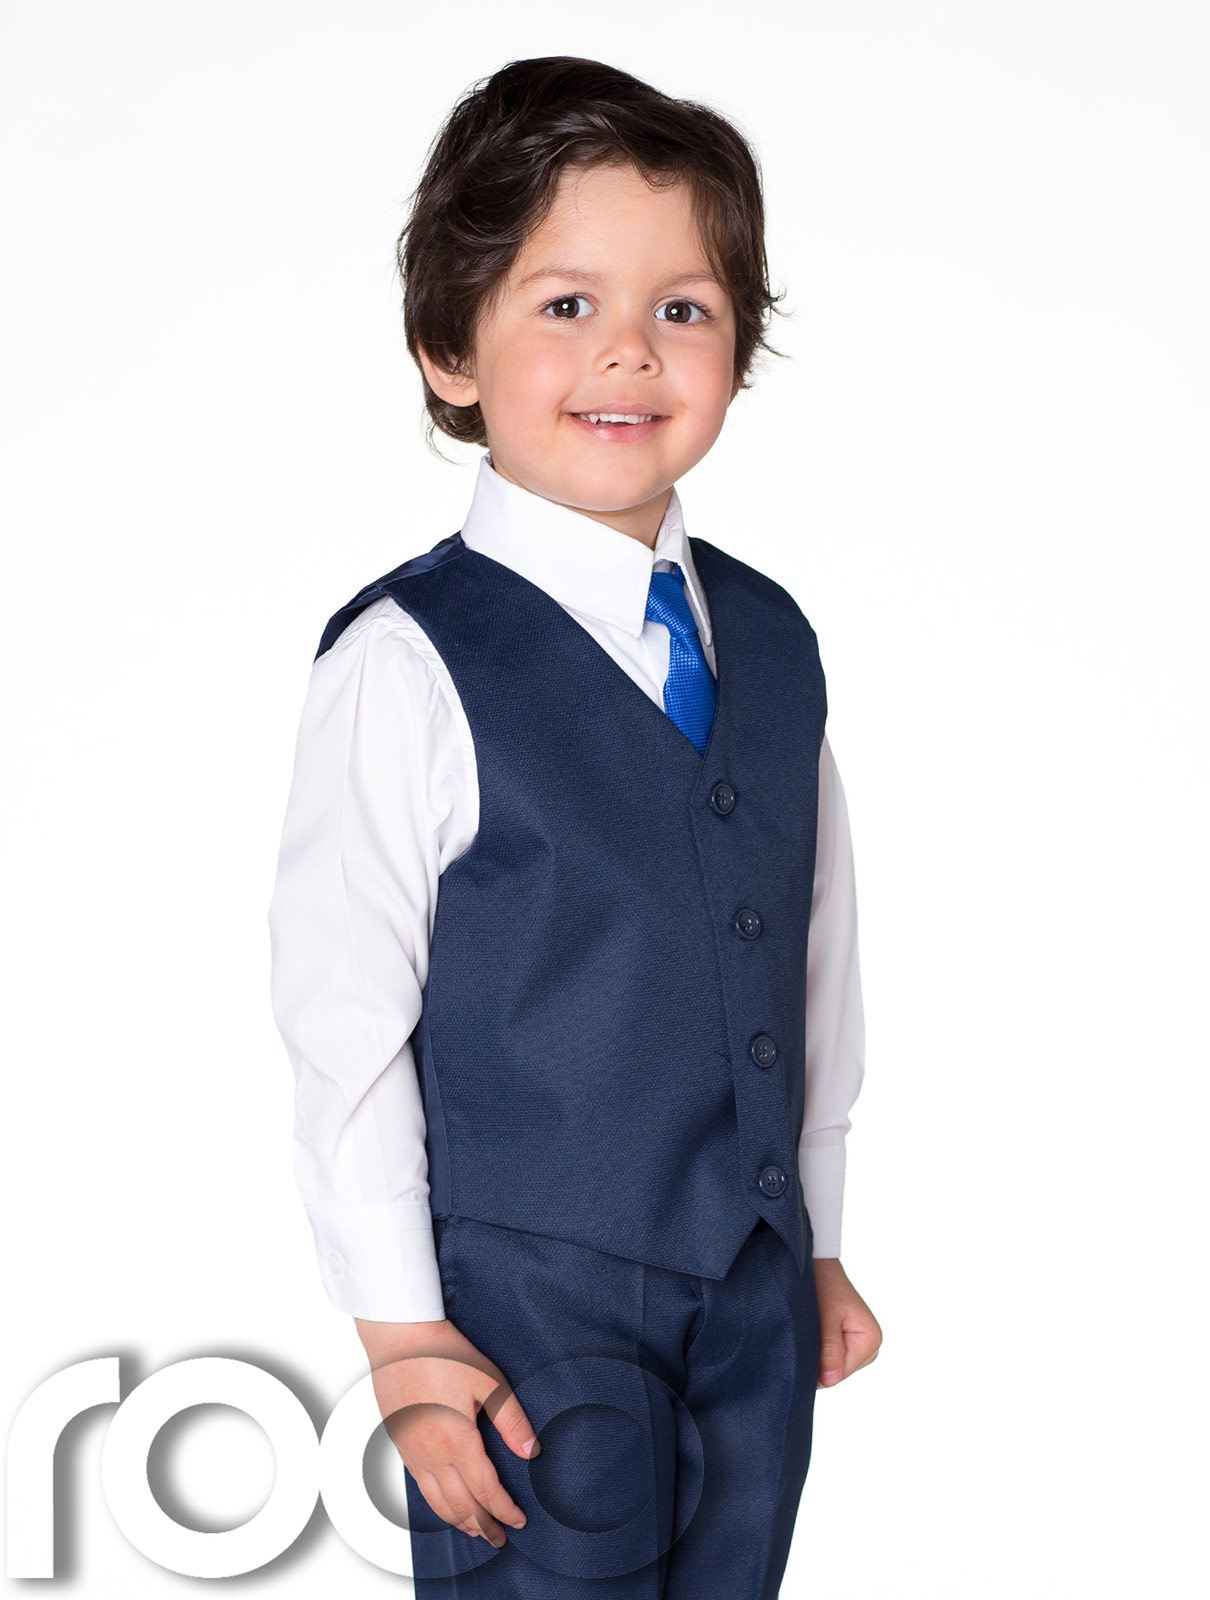 Page-Boy-Suits-Boys-Waistcoat-Suit-Boys-suits-Navy-Suit-Grey-Suit-Blue-Suit thumbnail 8